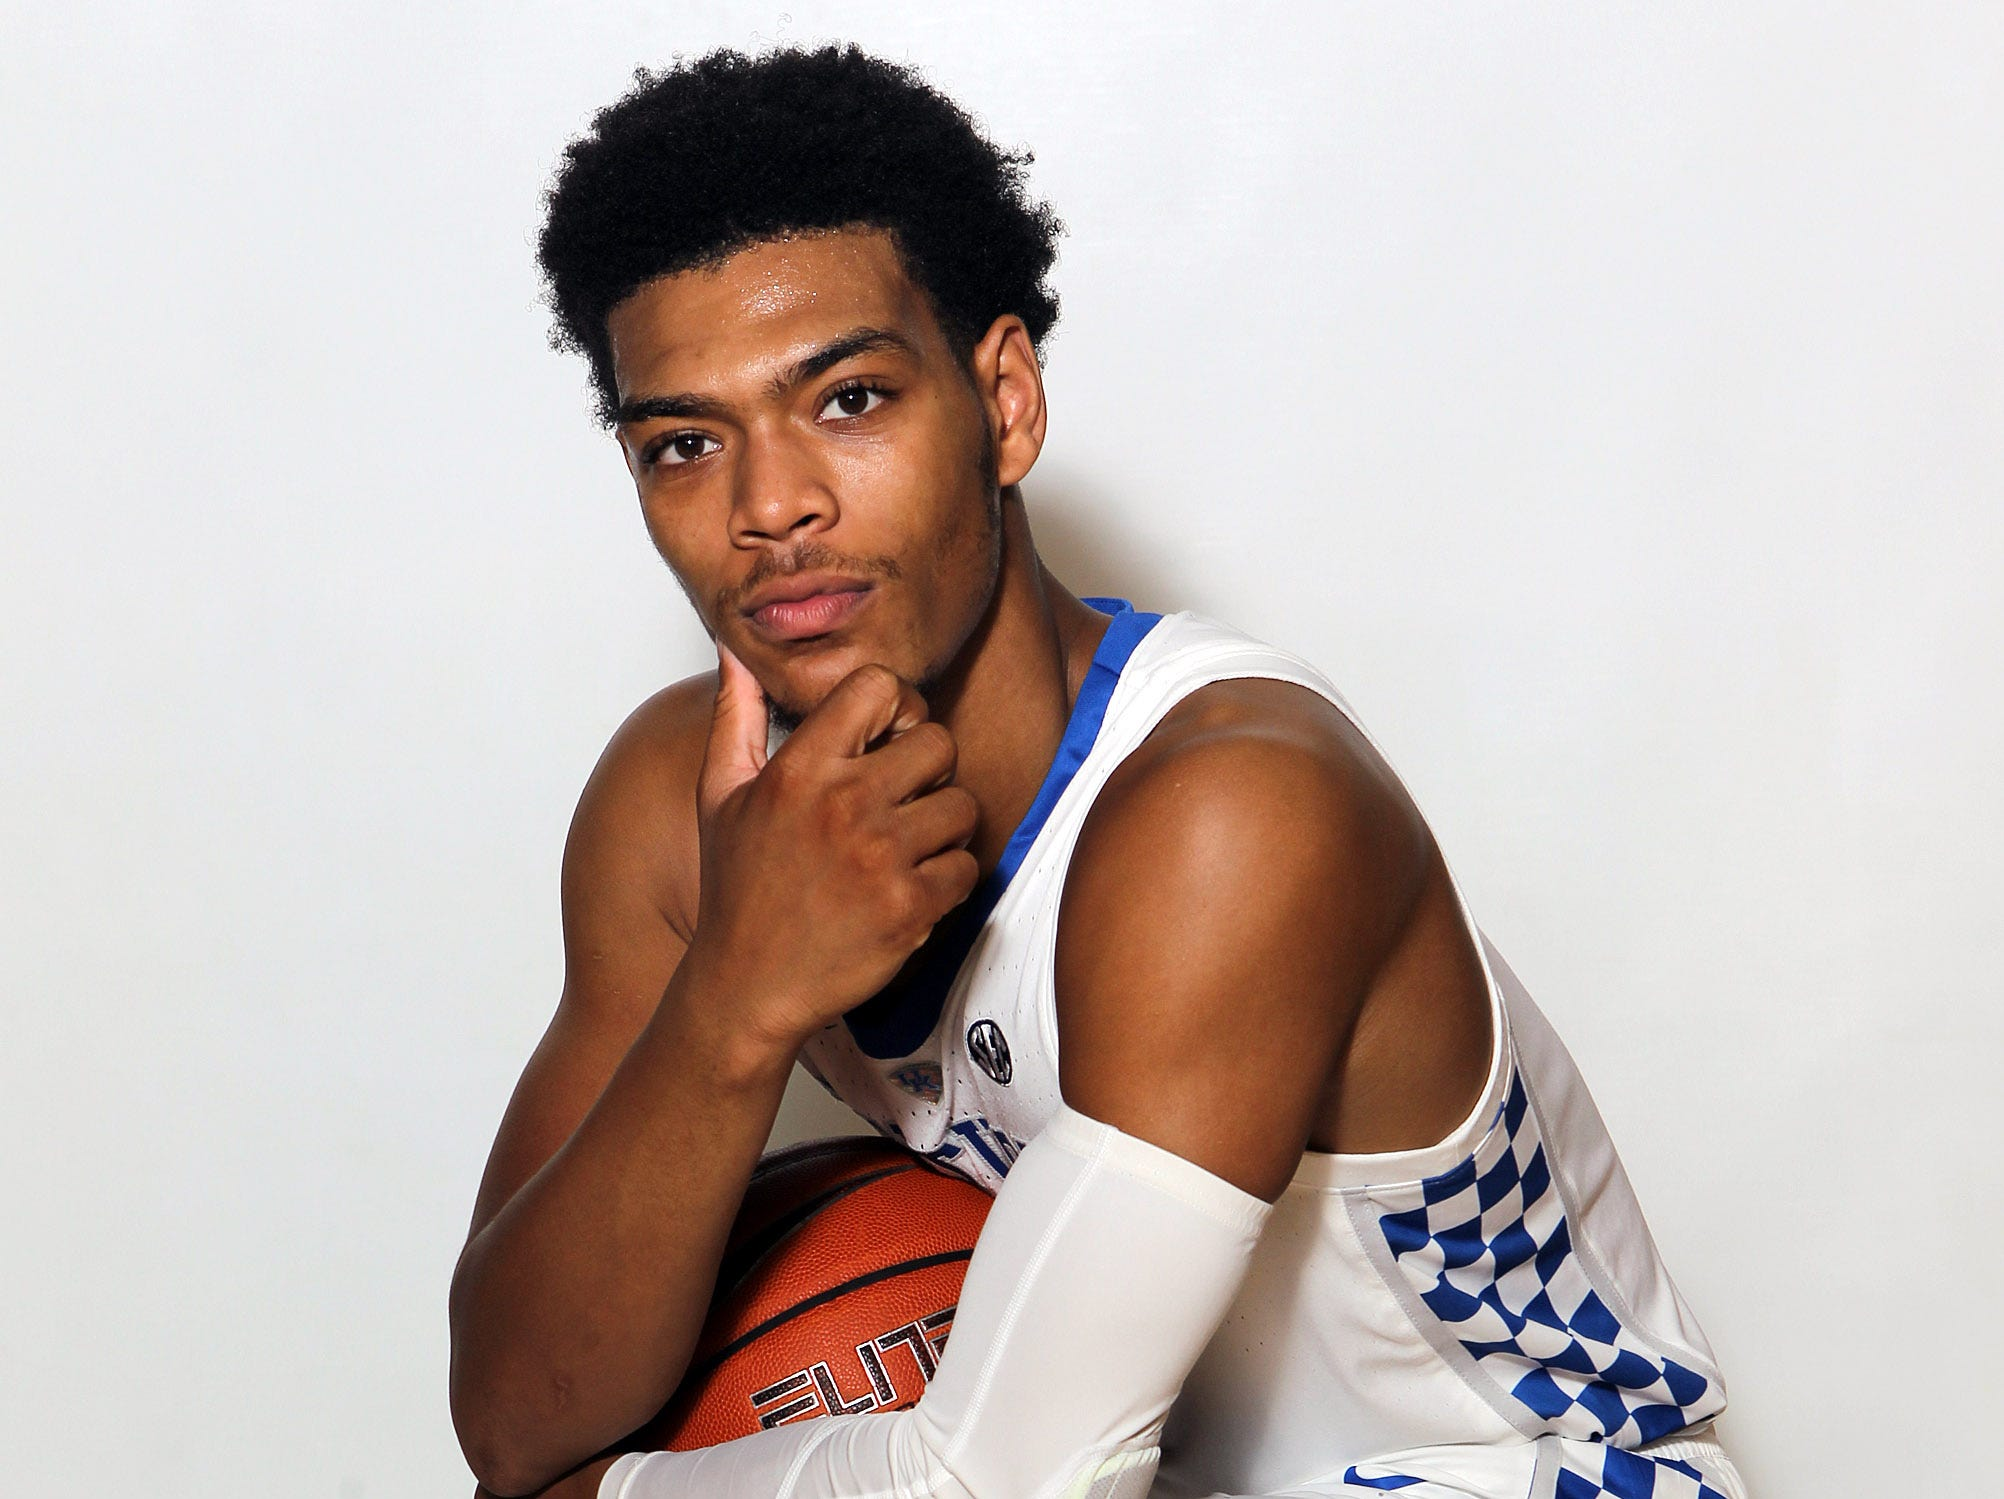 Kentucky's Quade Green (0) poses during the teams picture day in Memorial Coliseum on campus. Sep. 20, 2018